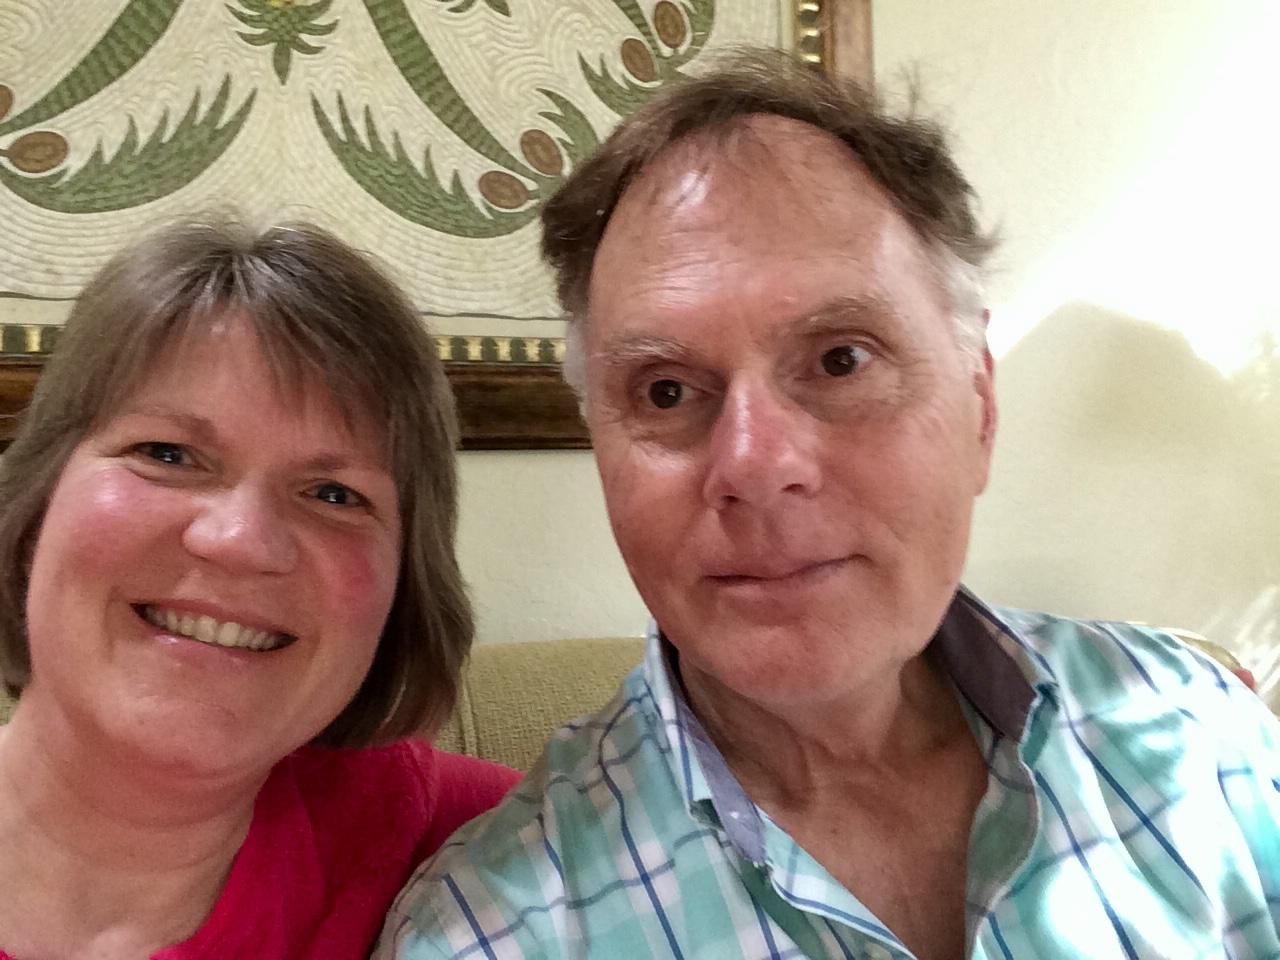 Laurie Berning - and husband, Tom, pray and hope that their extended family's circle will be unbroken at the heavenly reunion.